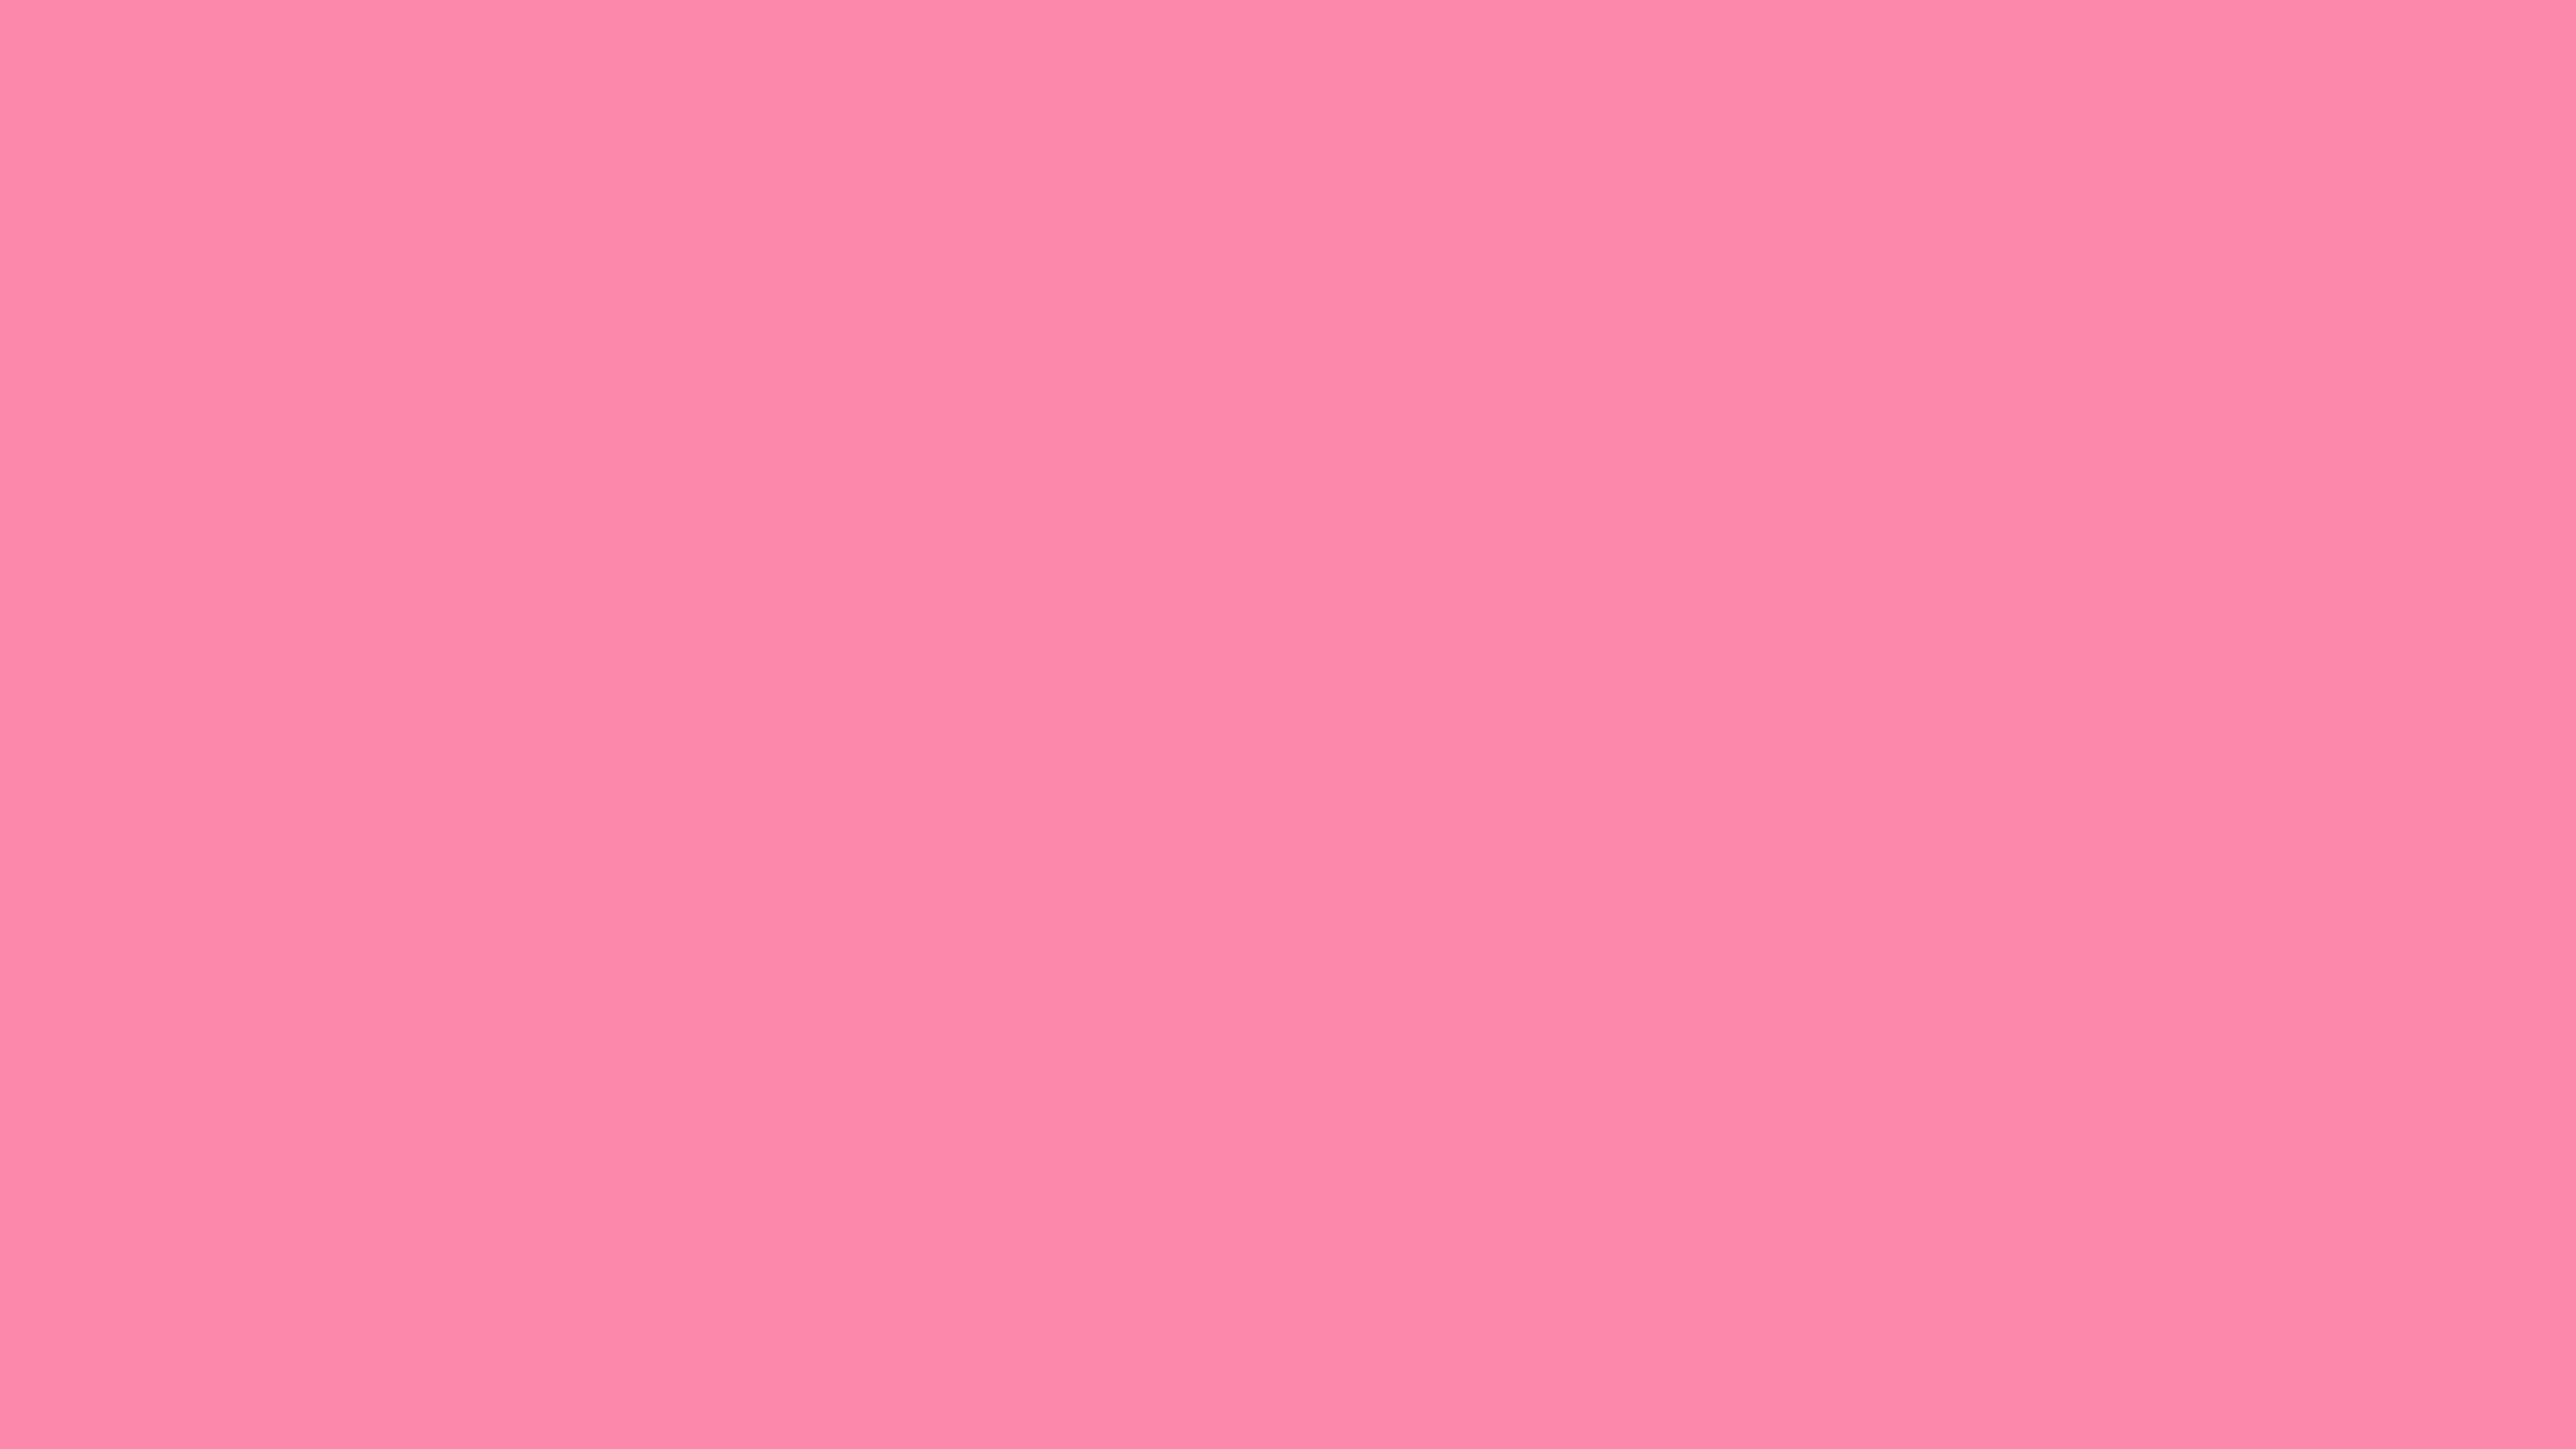 3840x2160 Tickle Me Pink Solid Color Background